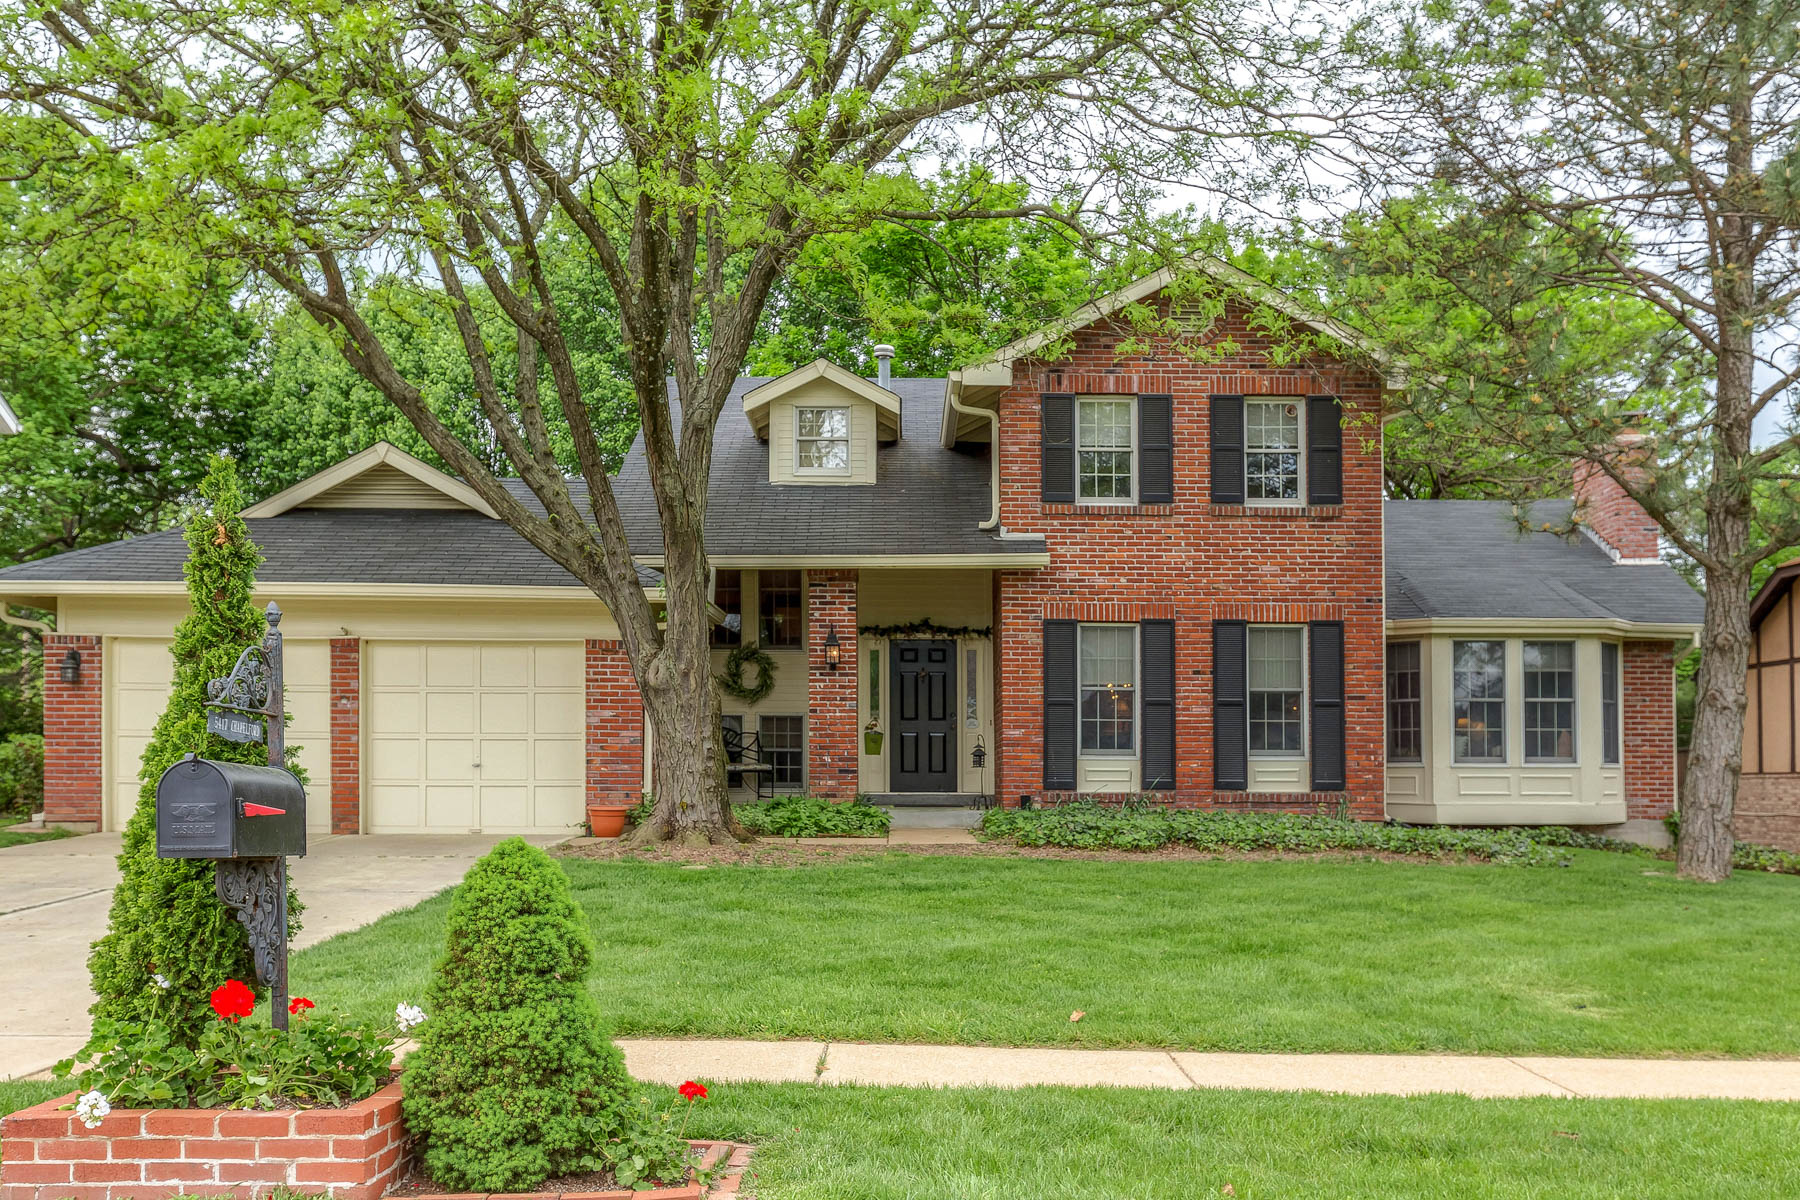 Single Family Home for Sale at Chapelford 5417 Chapelford St. Louis, Missouri, 63119 United States